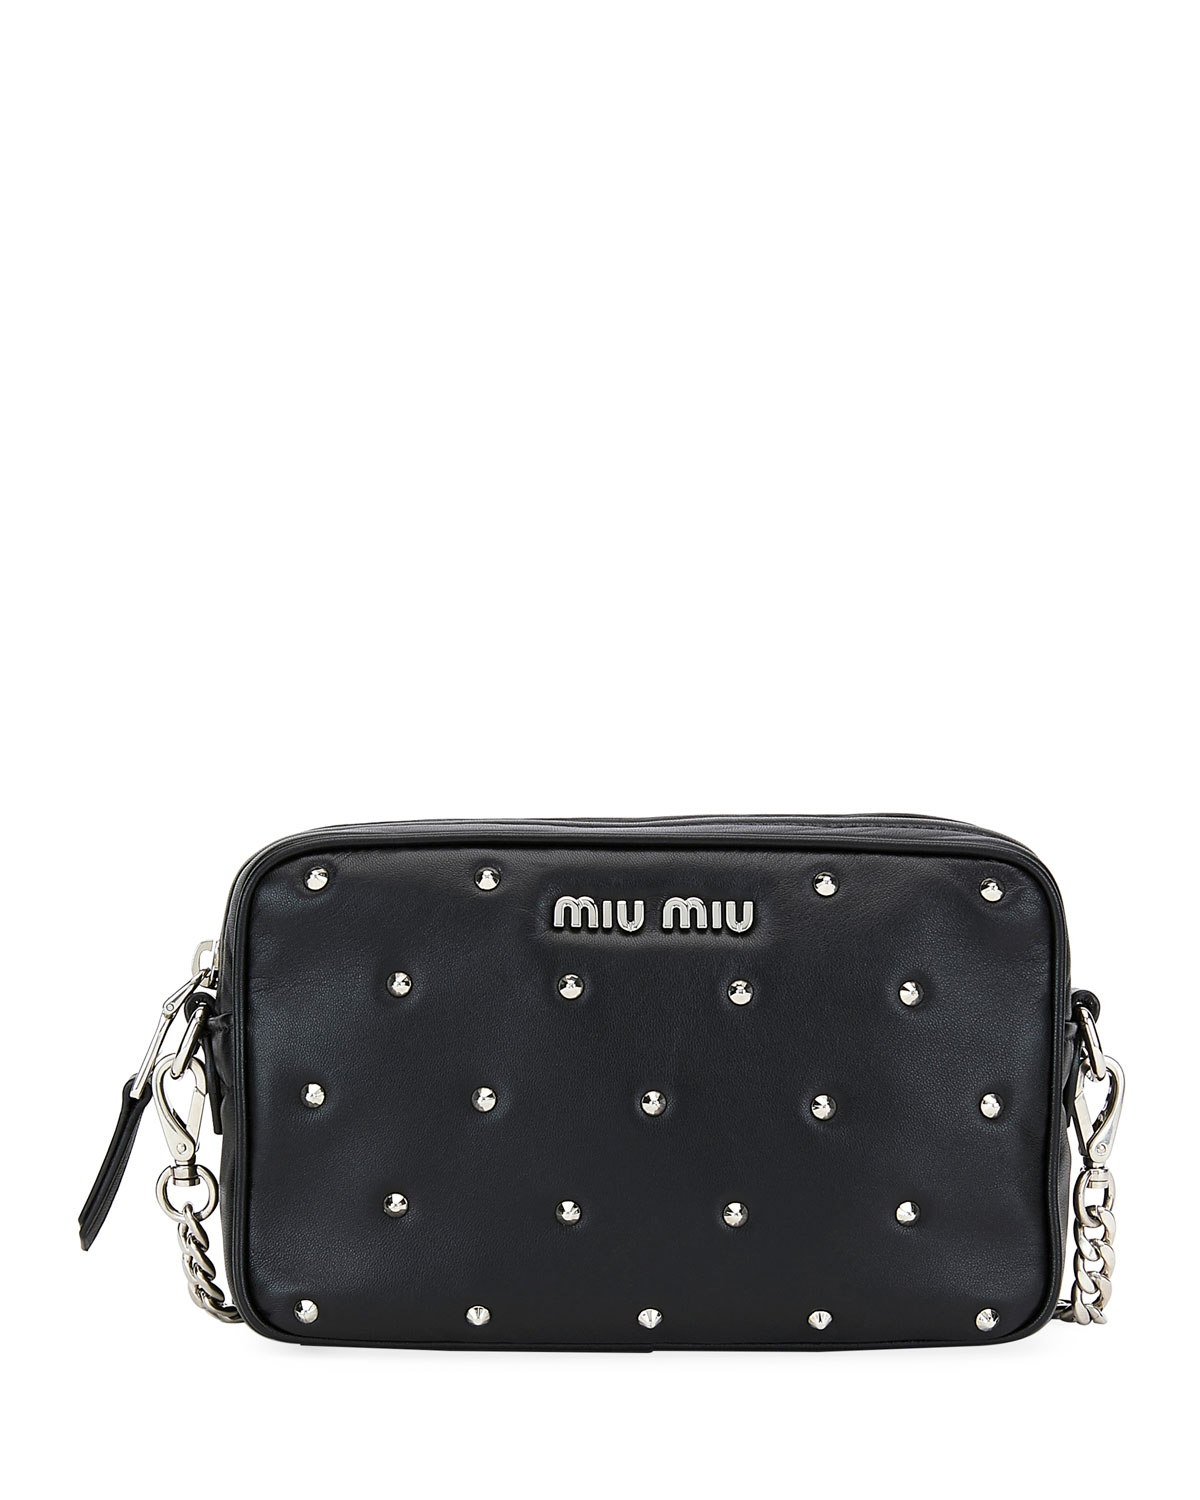 659d70dd5513 Miu Miu Jeweled-Stud Leather Crossbody Bag